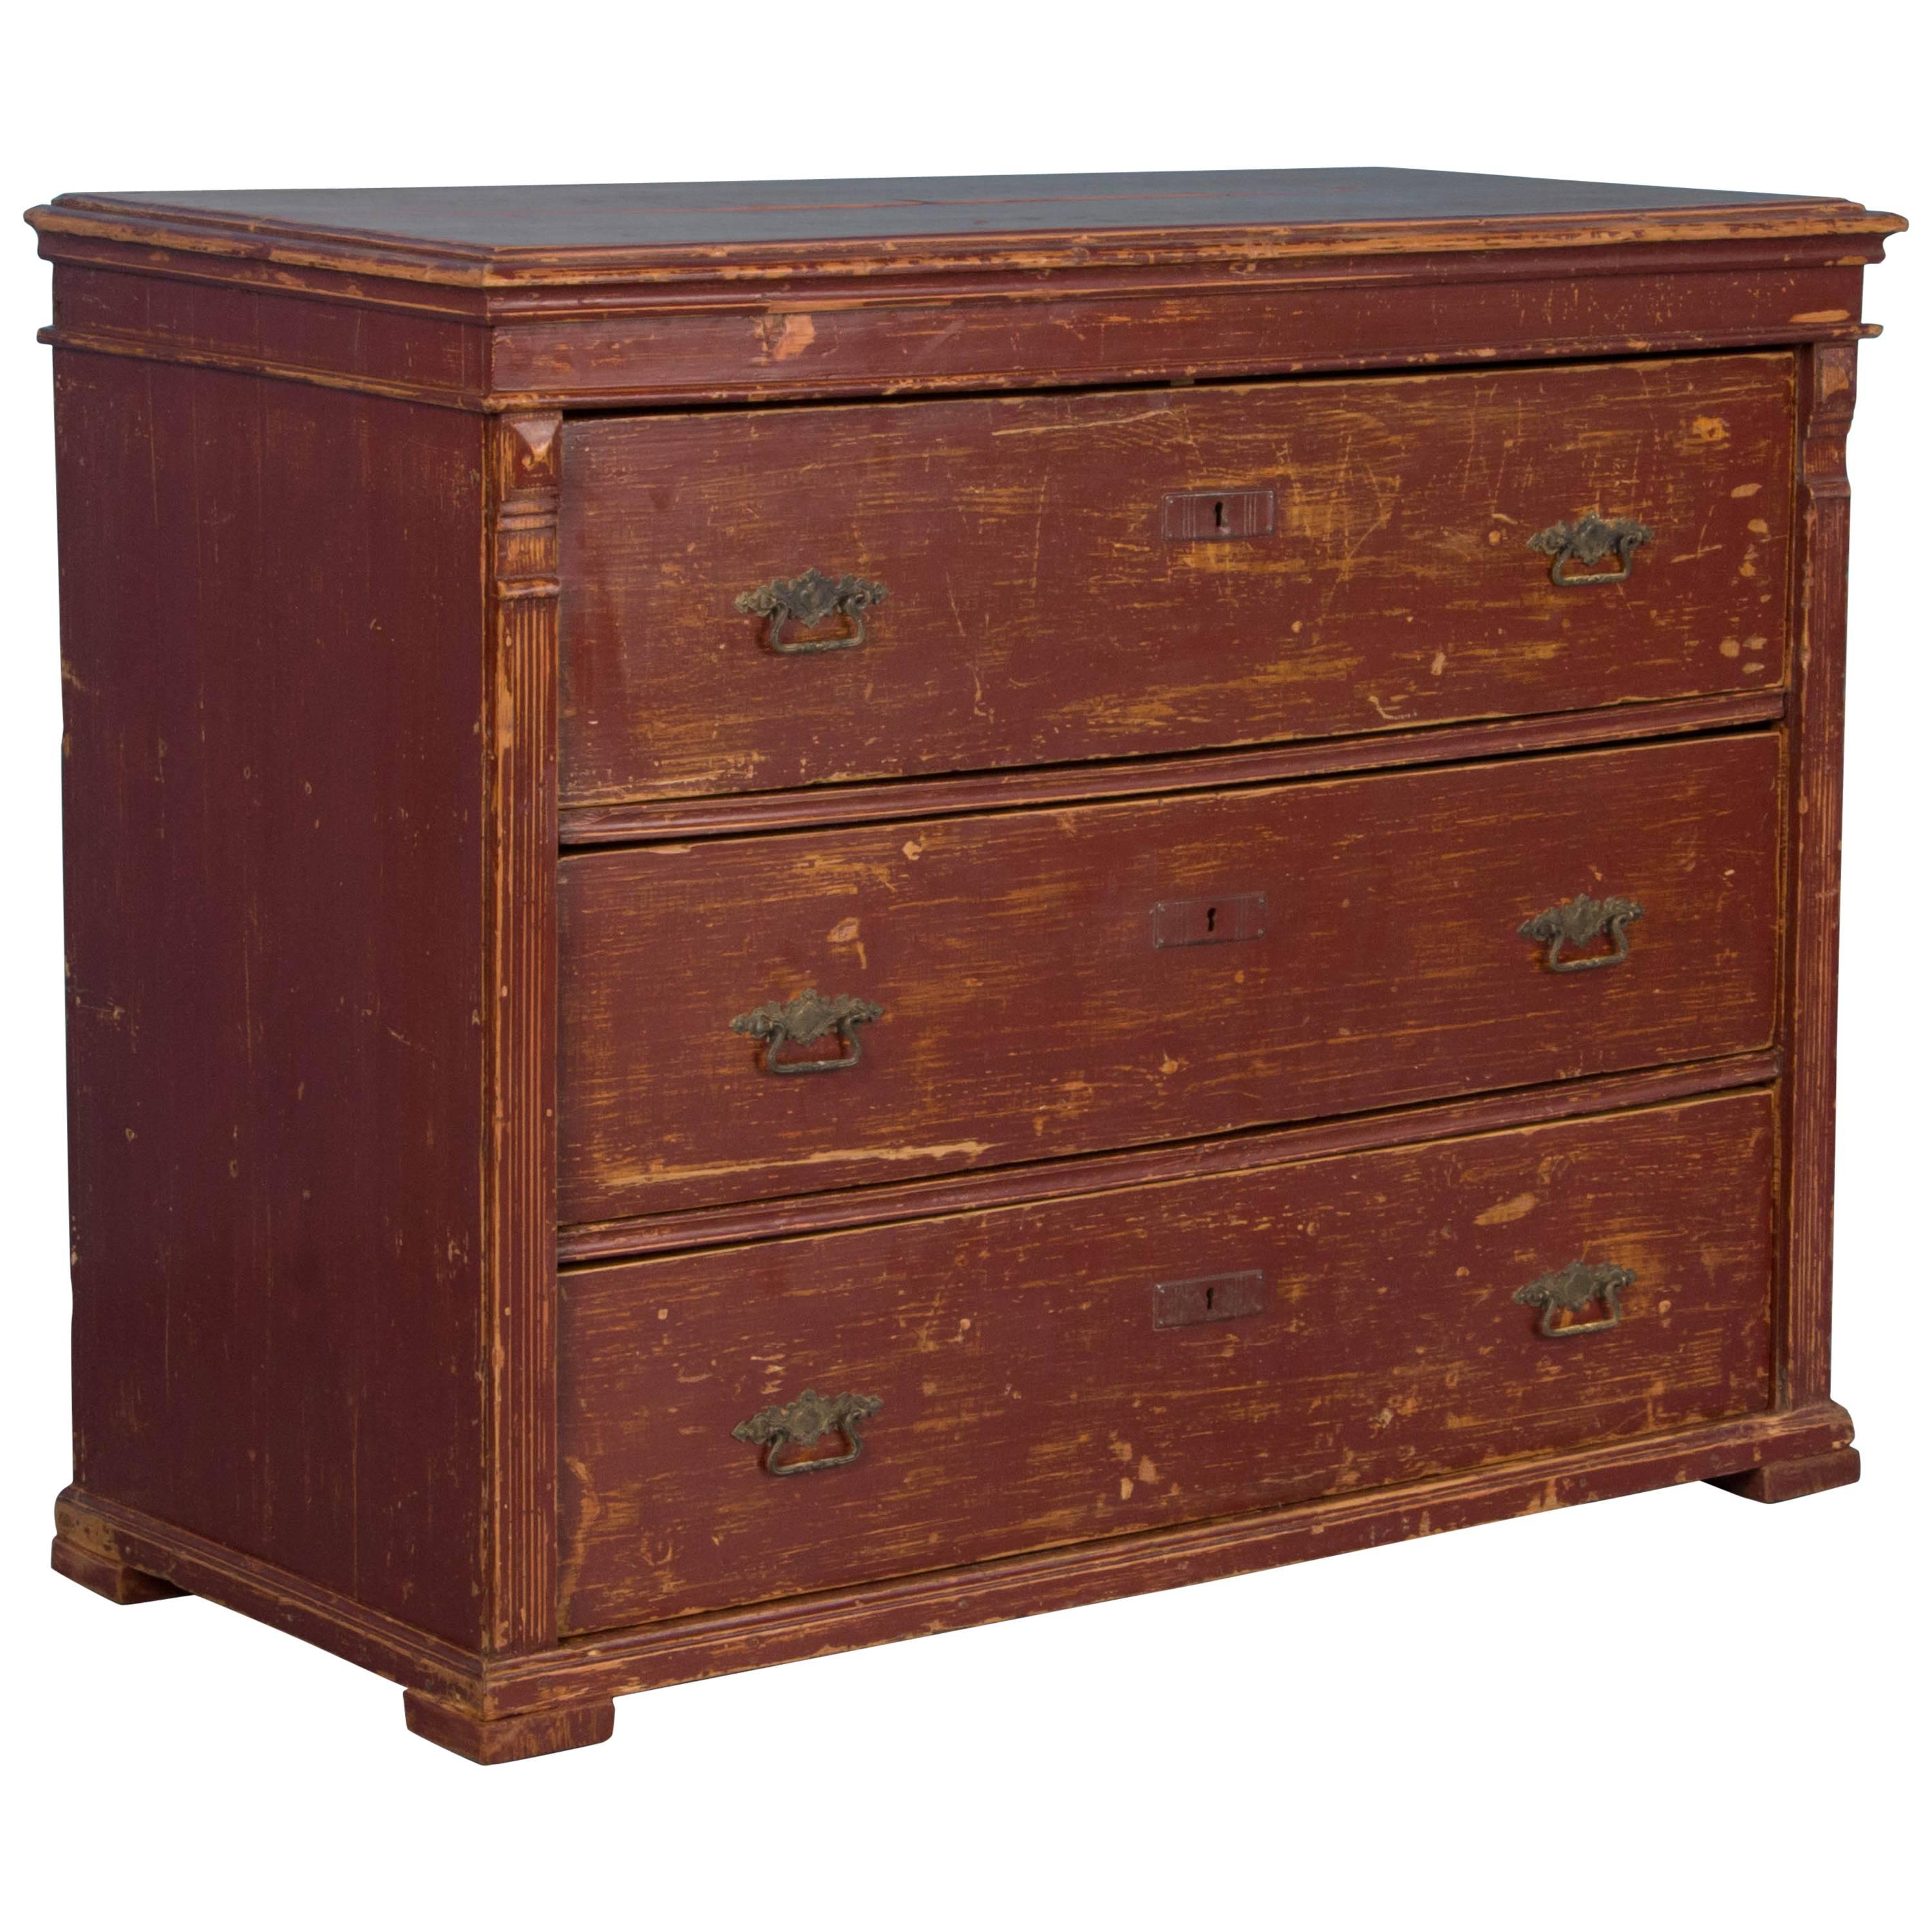 Hungarian Folk Art Pine Chest Of Drawers In Original Paint, Circa 1860 For  Sale At 1stdibs